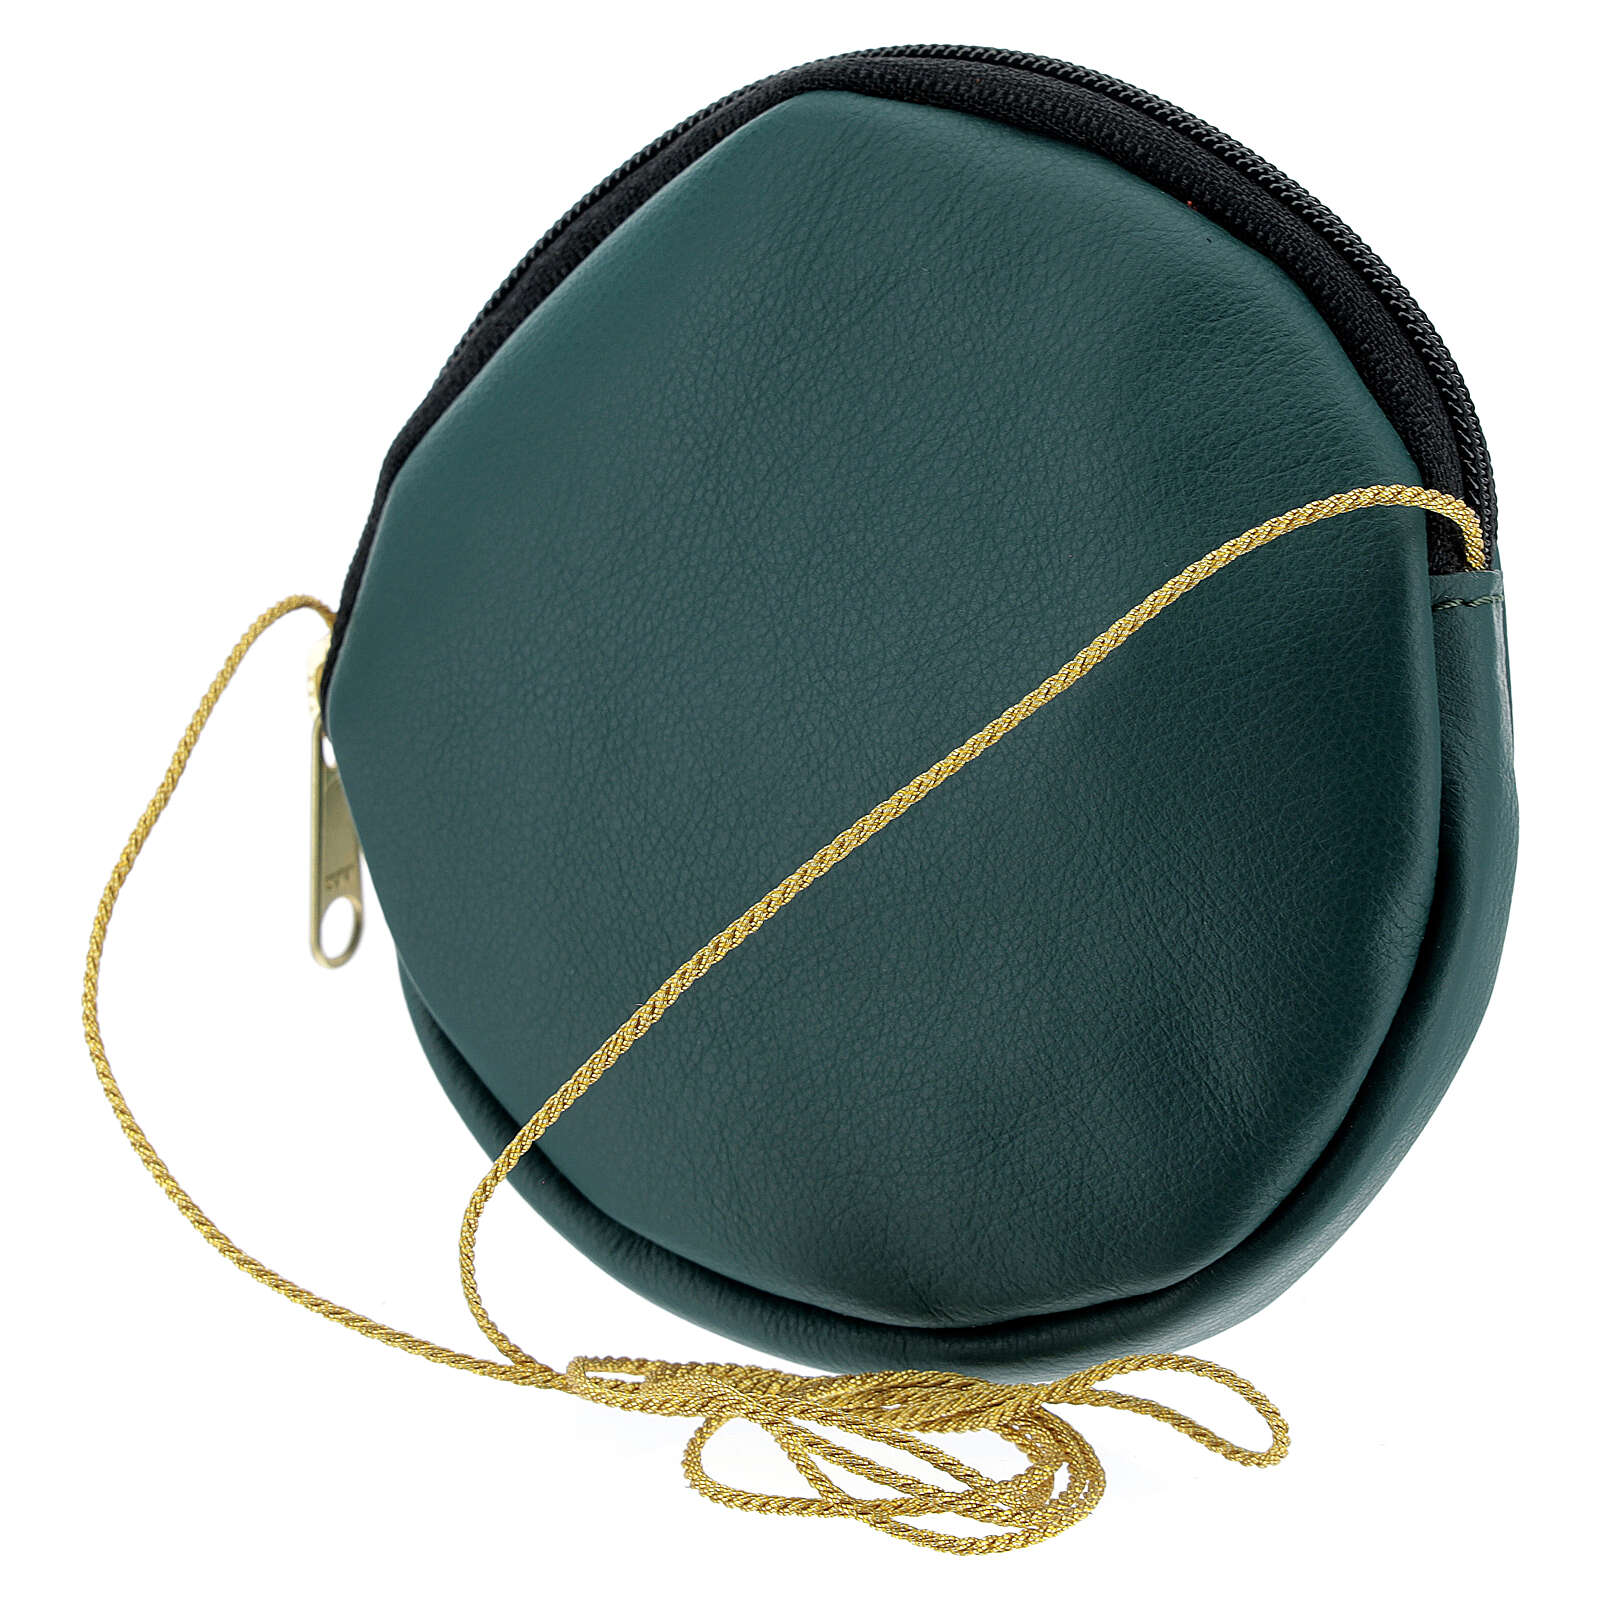 Paten case in real green leather monogram Christ gold 12 cm 4